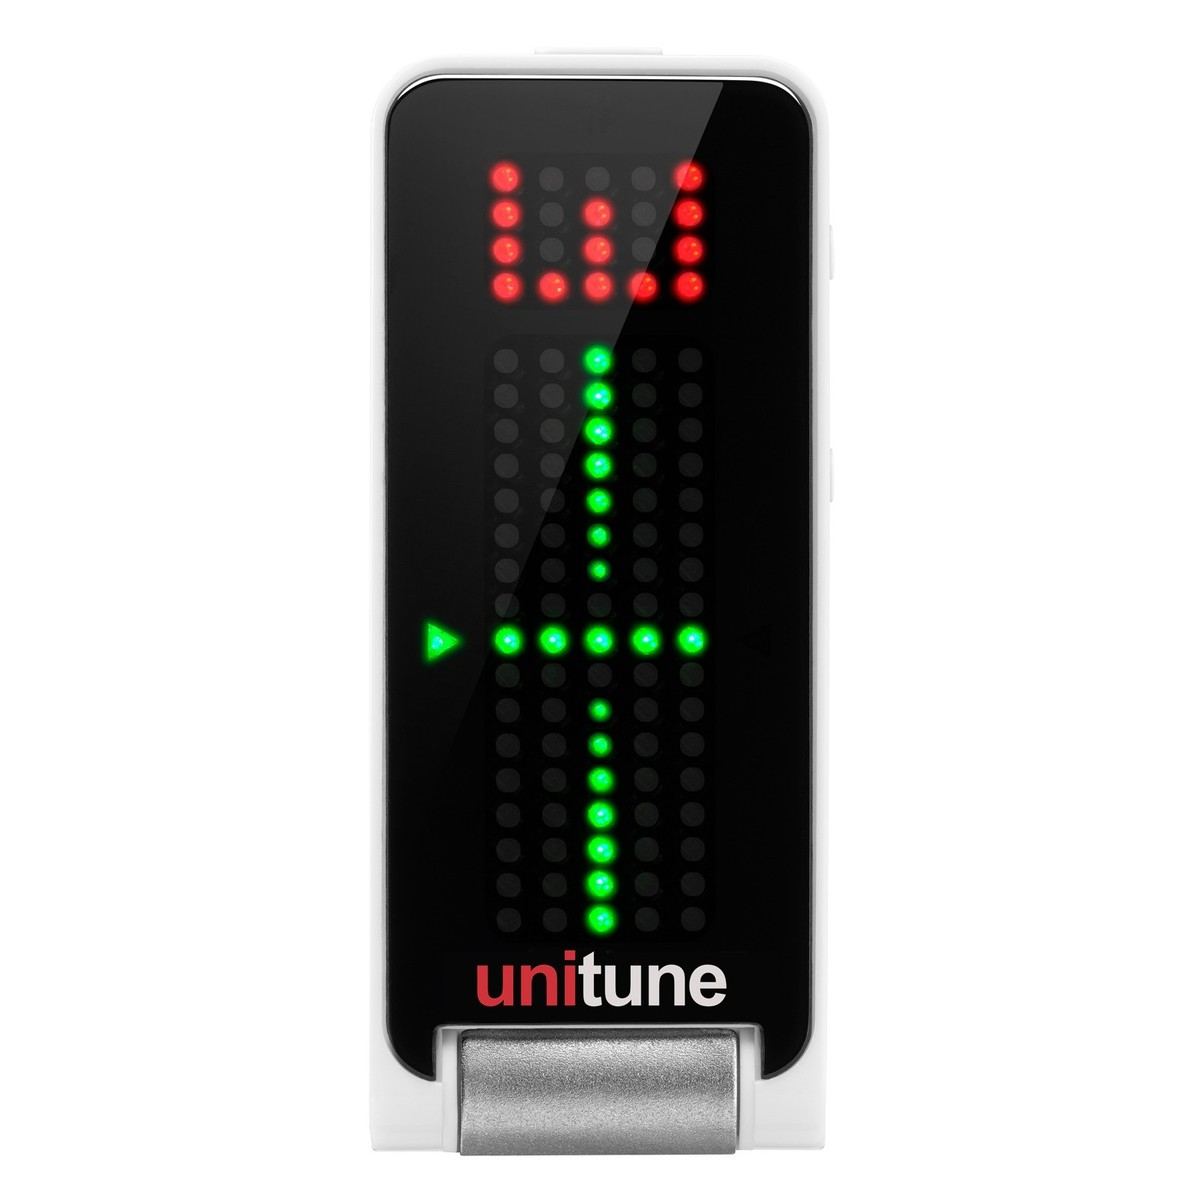 the best home recording studio accessories you can buy unitune guitar tuner.jpg